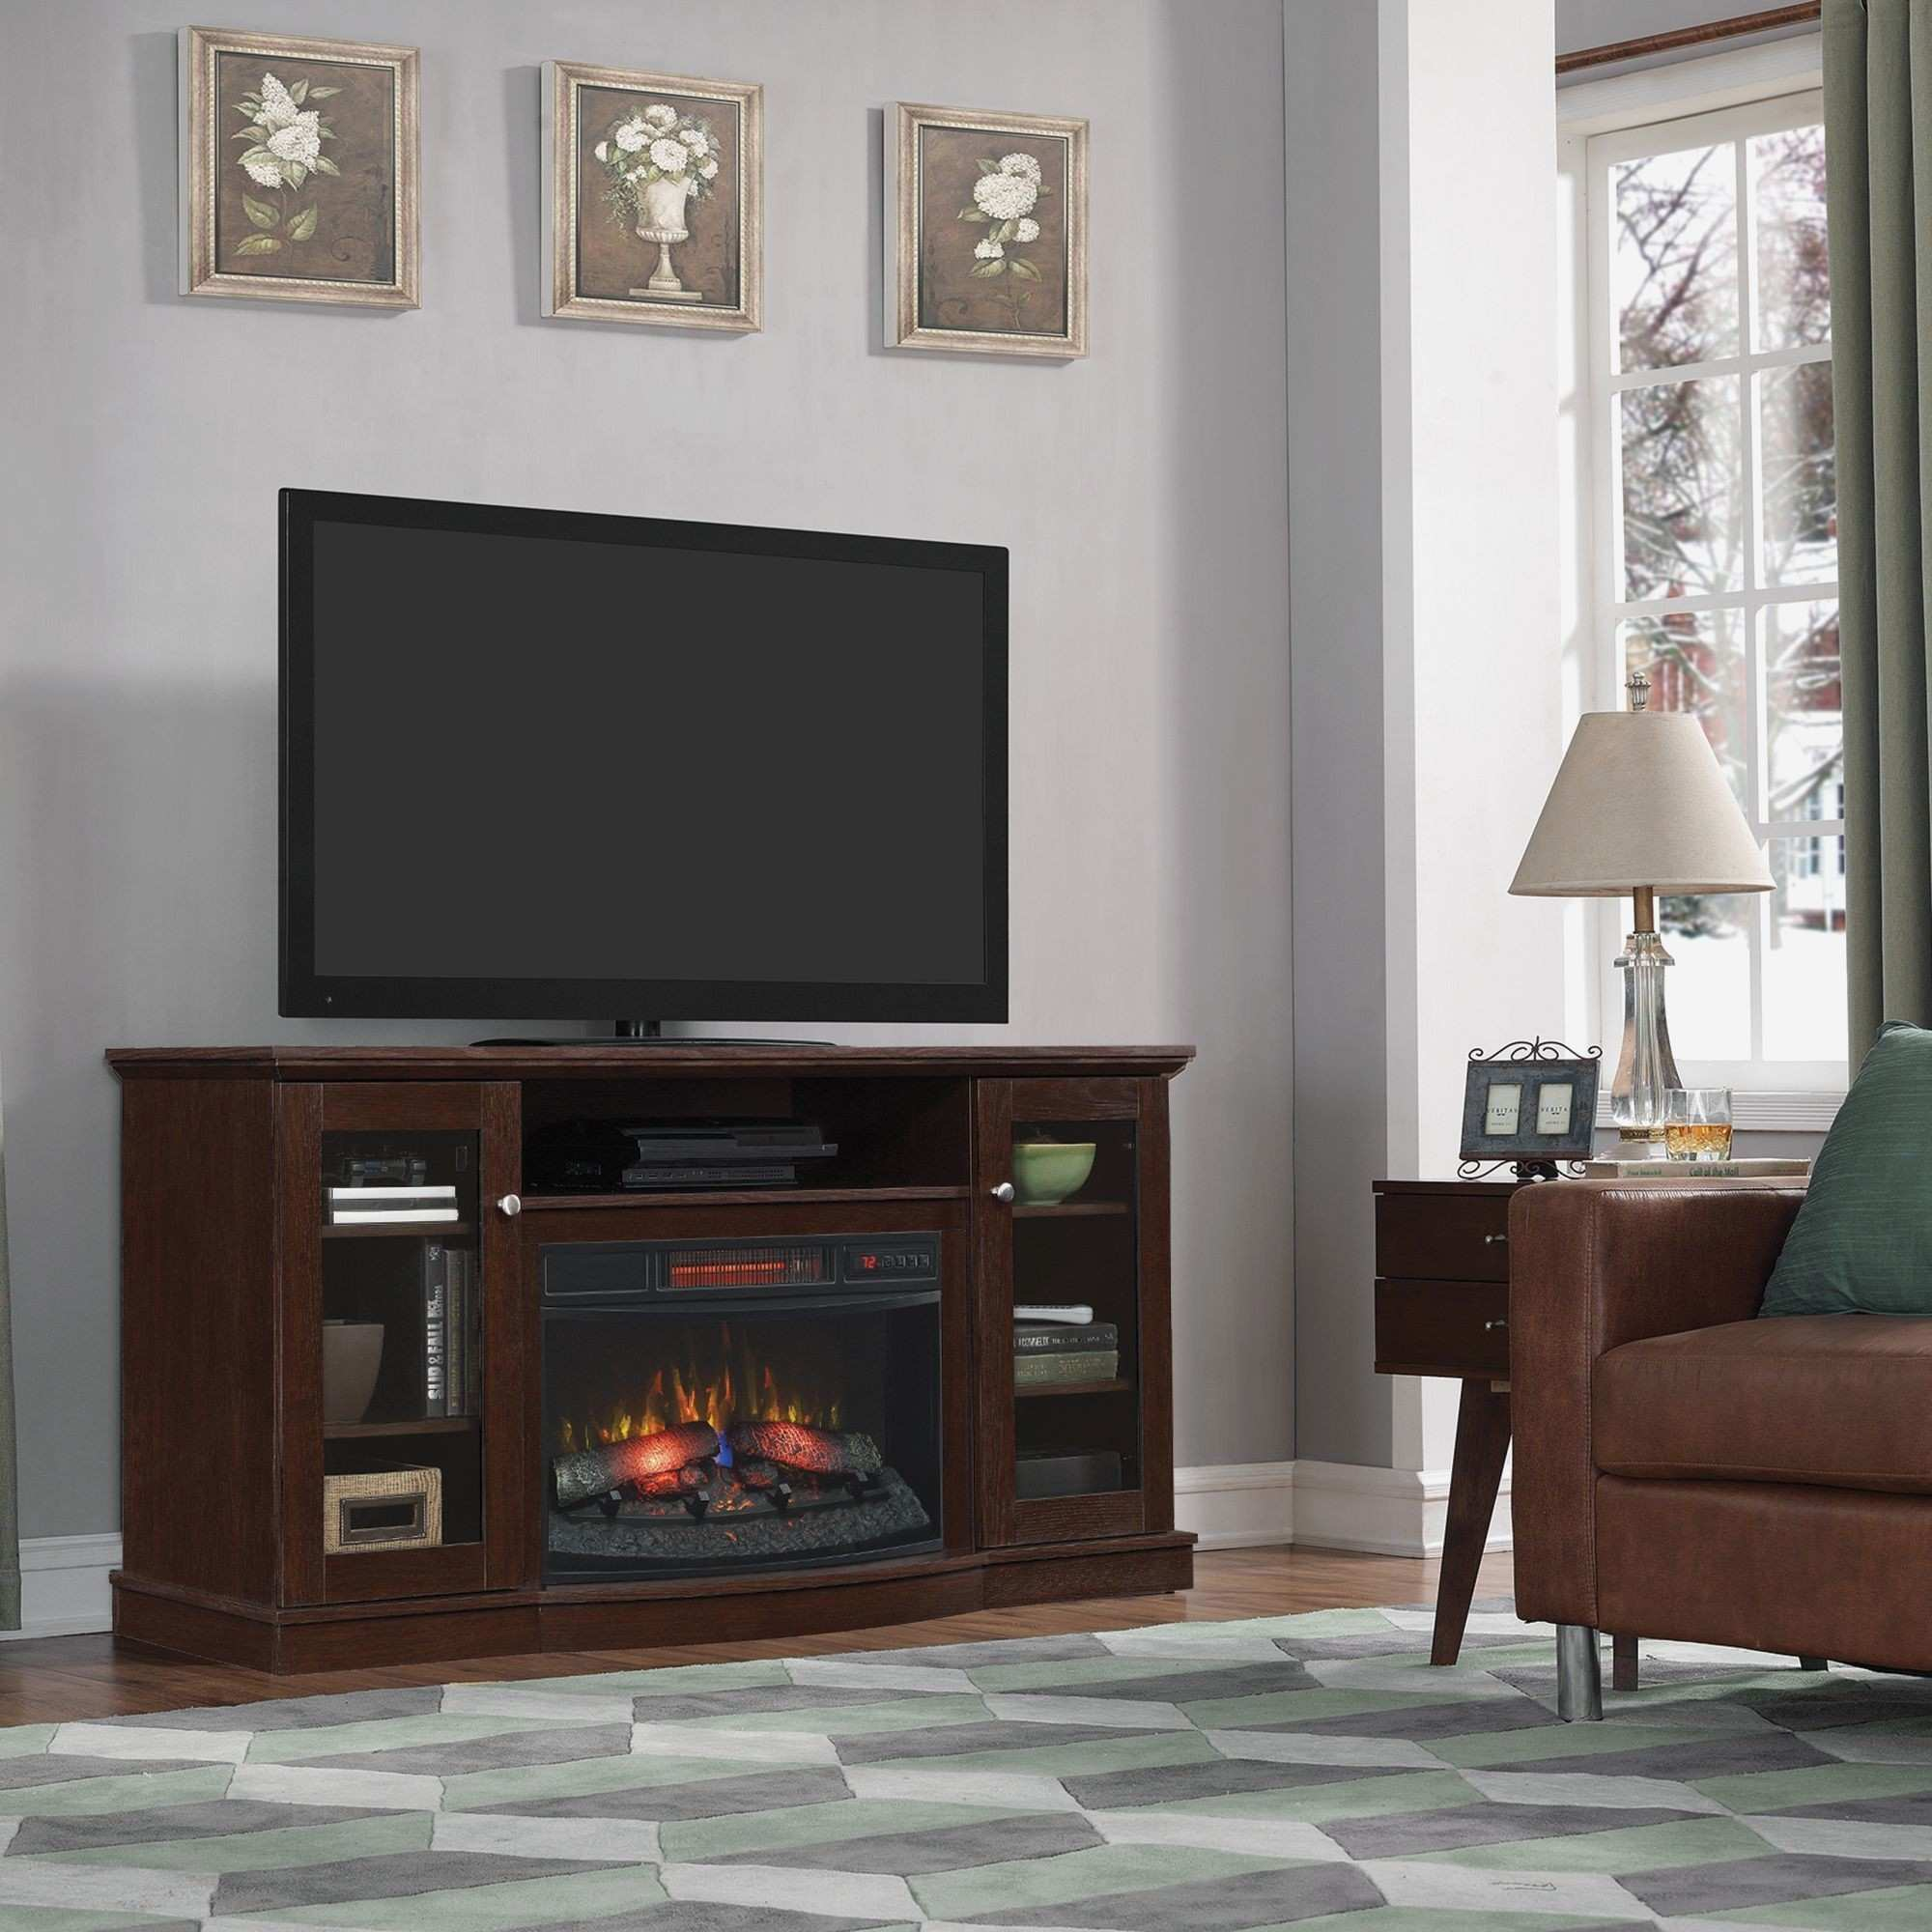 Decorating Ideas for Fireplace Best My Fireplace Metal Frame Home